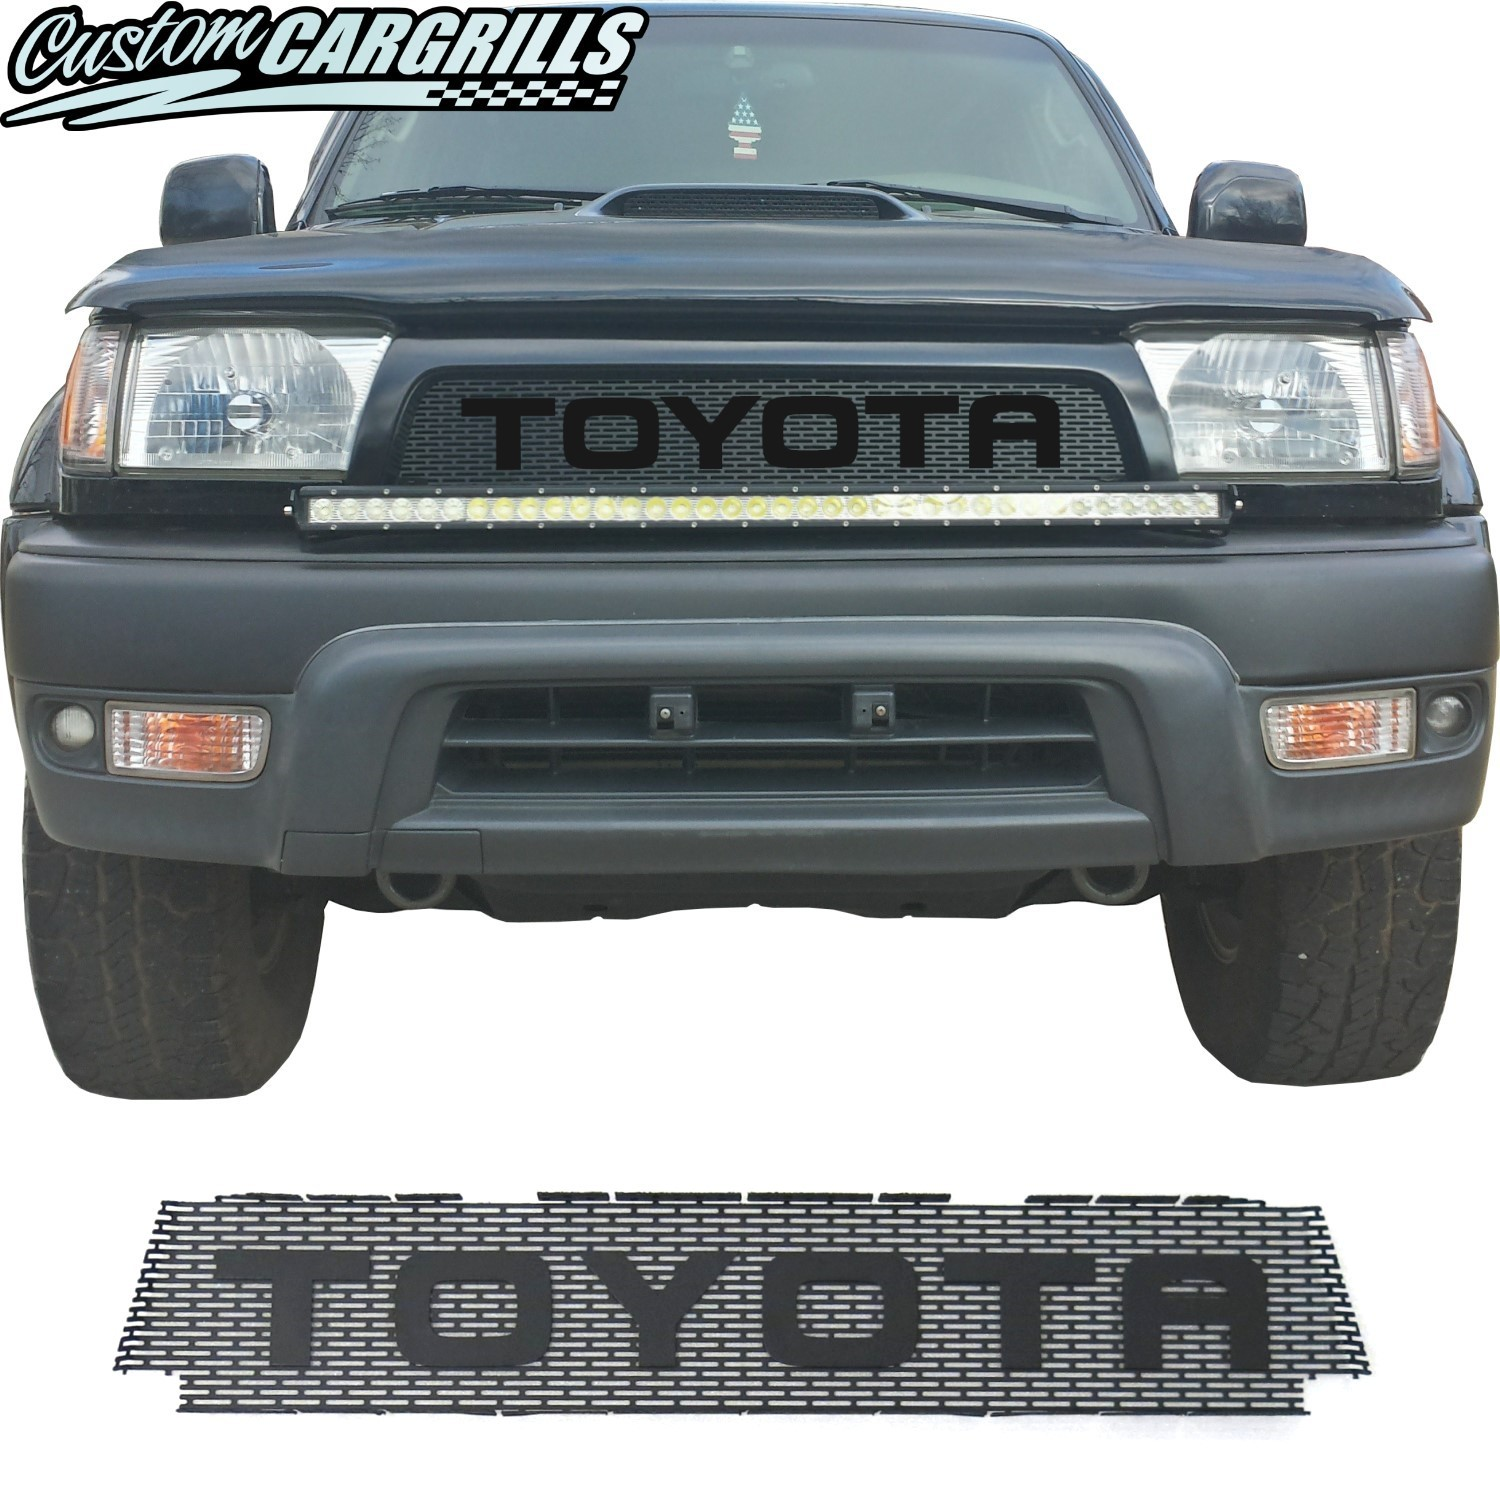 1996-98 (and 99-02*) Toyota 4Runner Grill Mesh With Big Letters